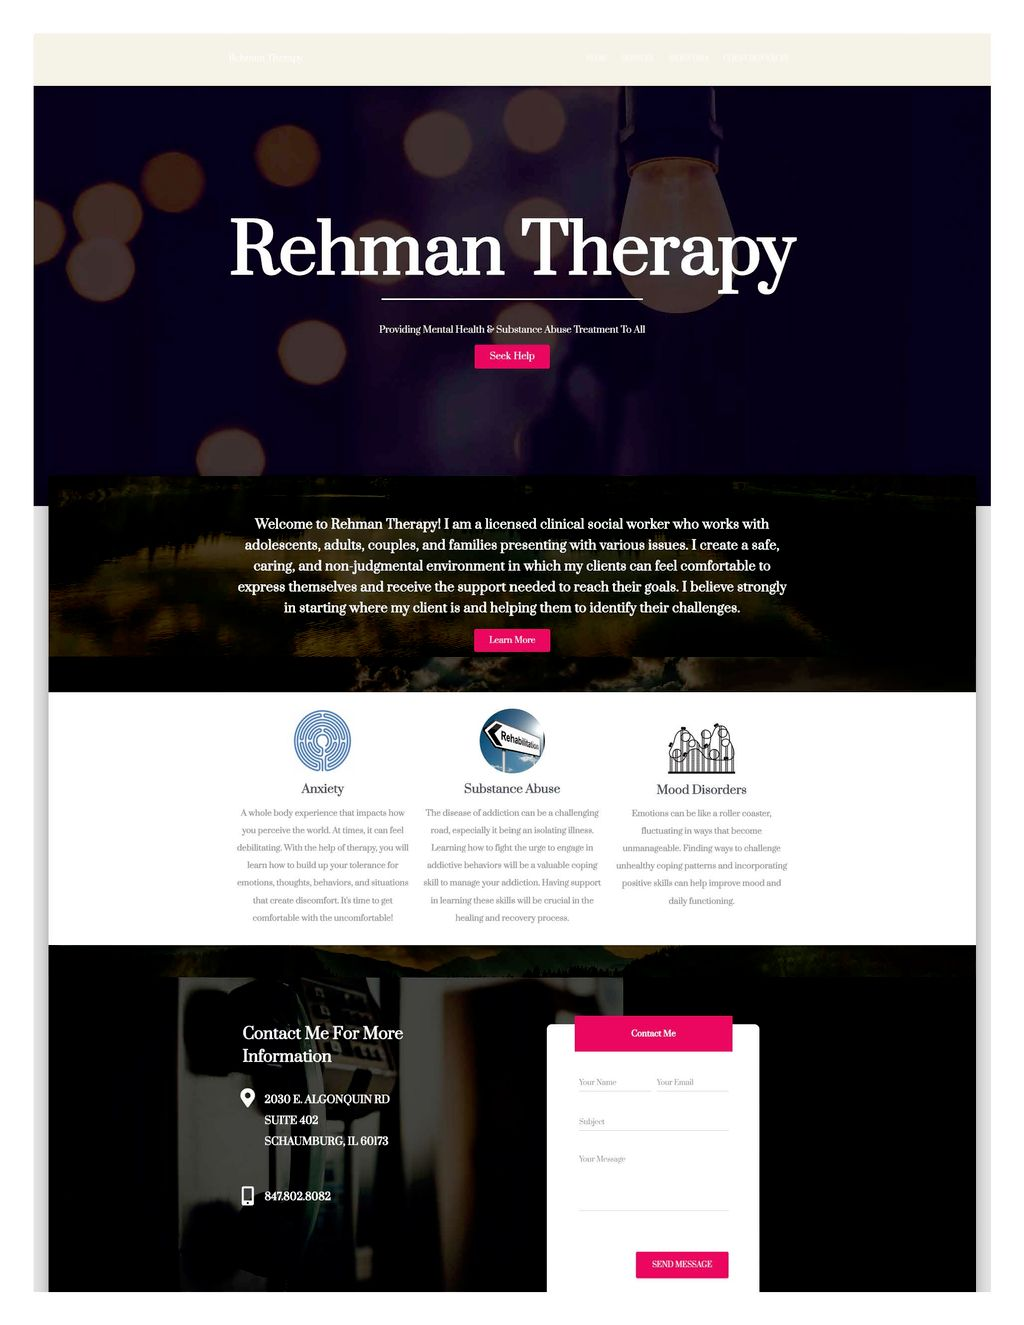 Therapy website